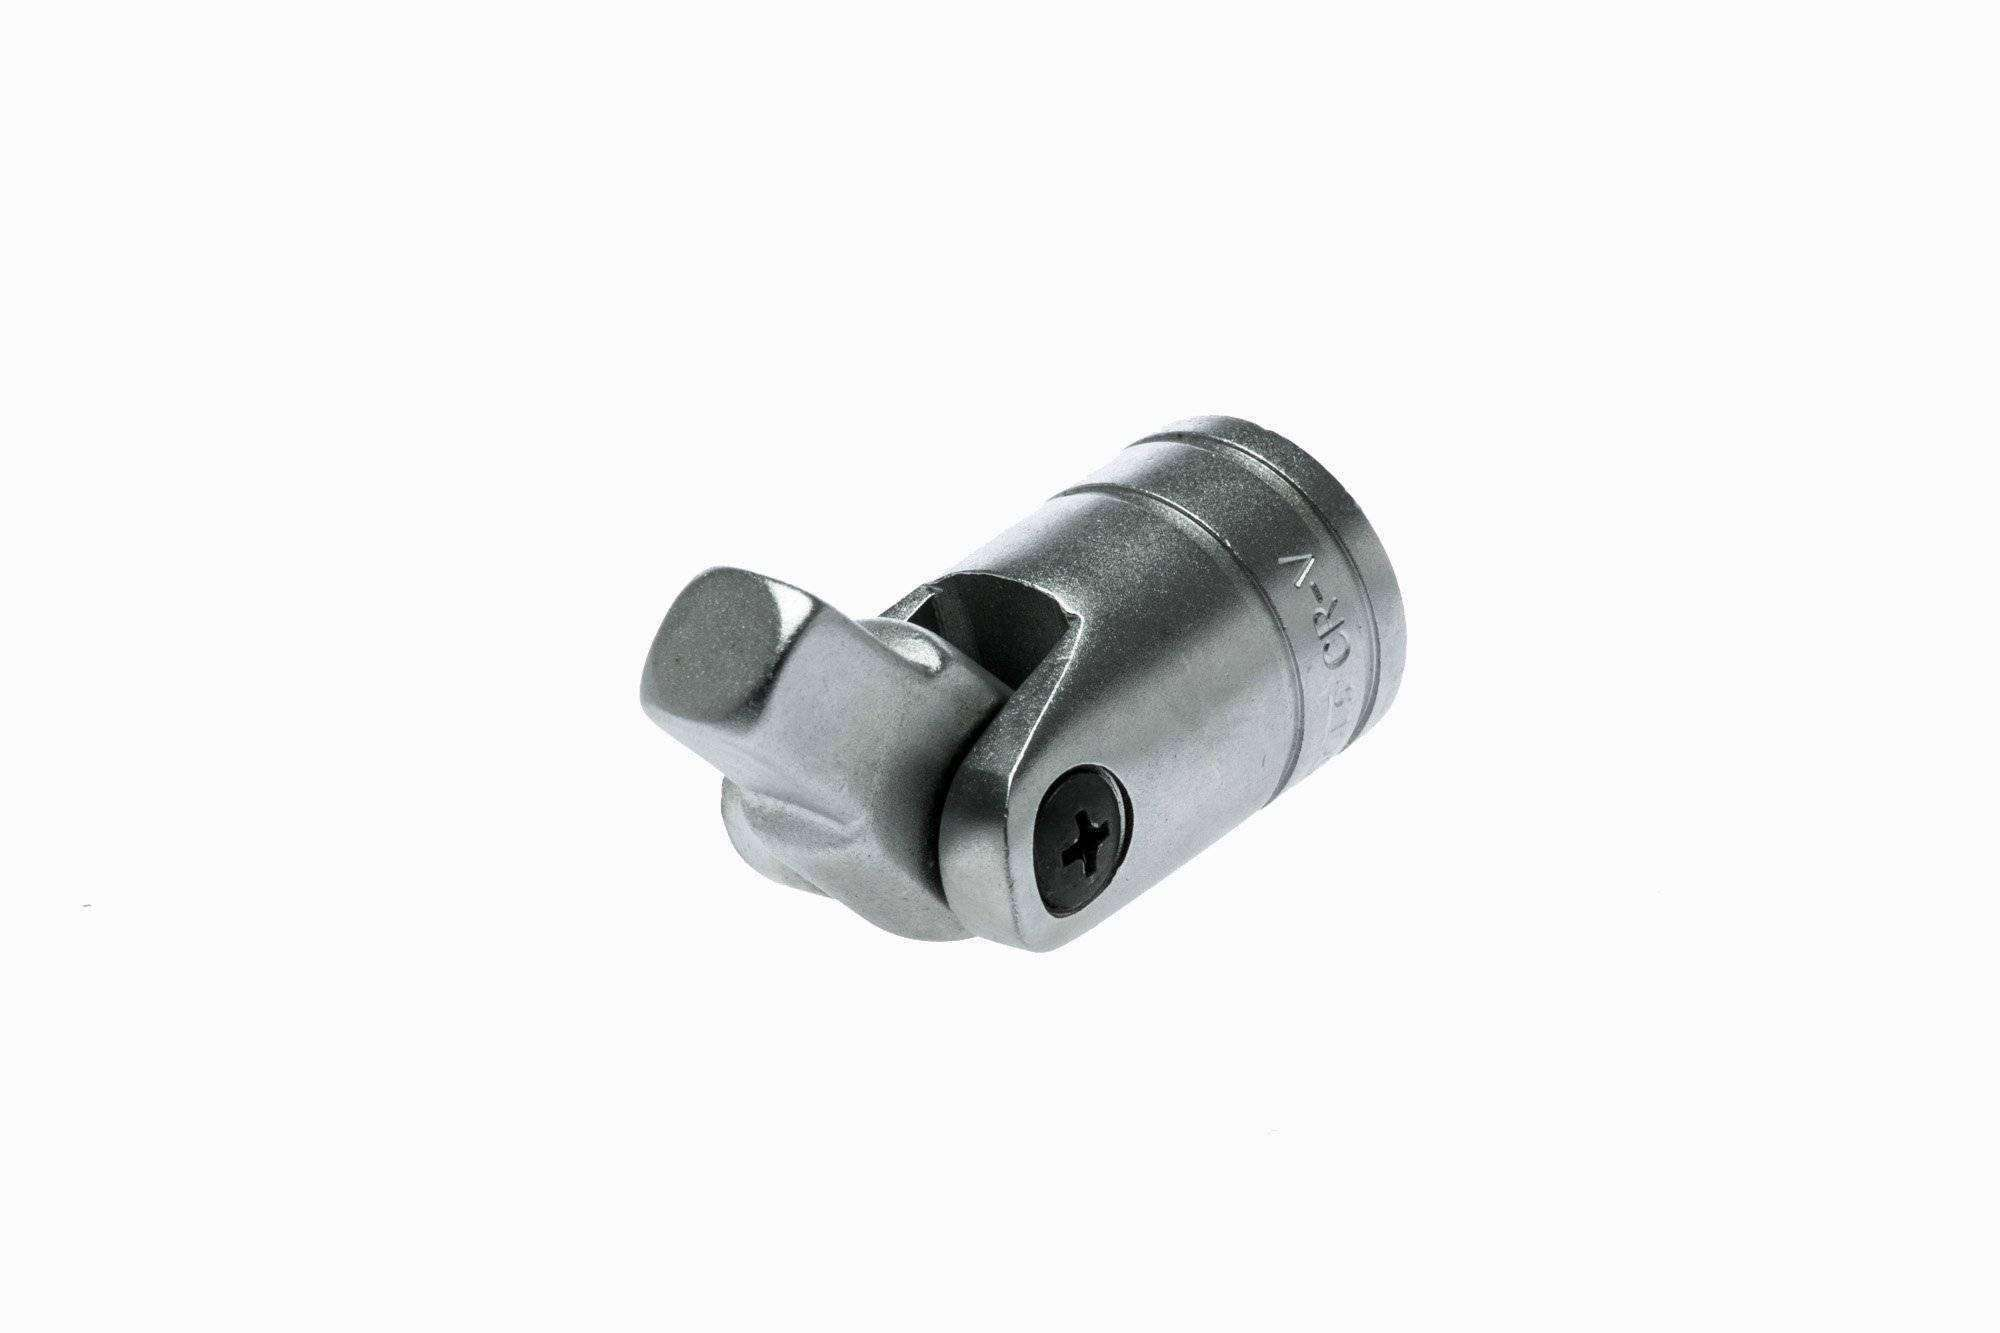 Teng Tools - 1/2 Inch Drive Universal Joint Adaptor - M120080-C - Teng Tools USA